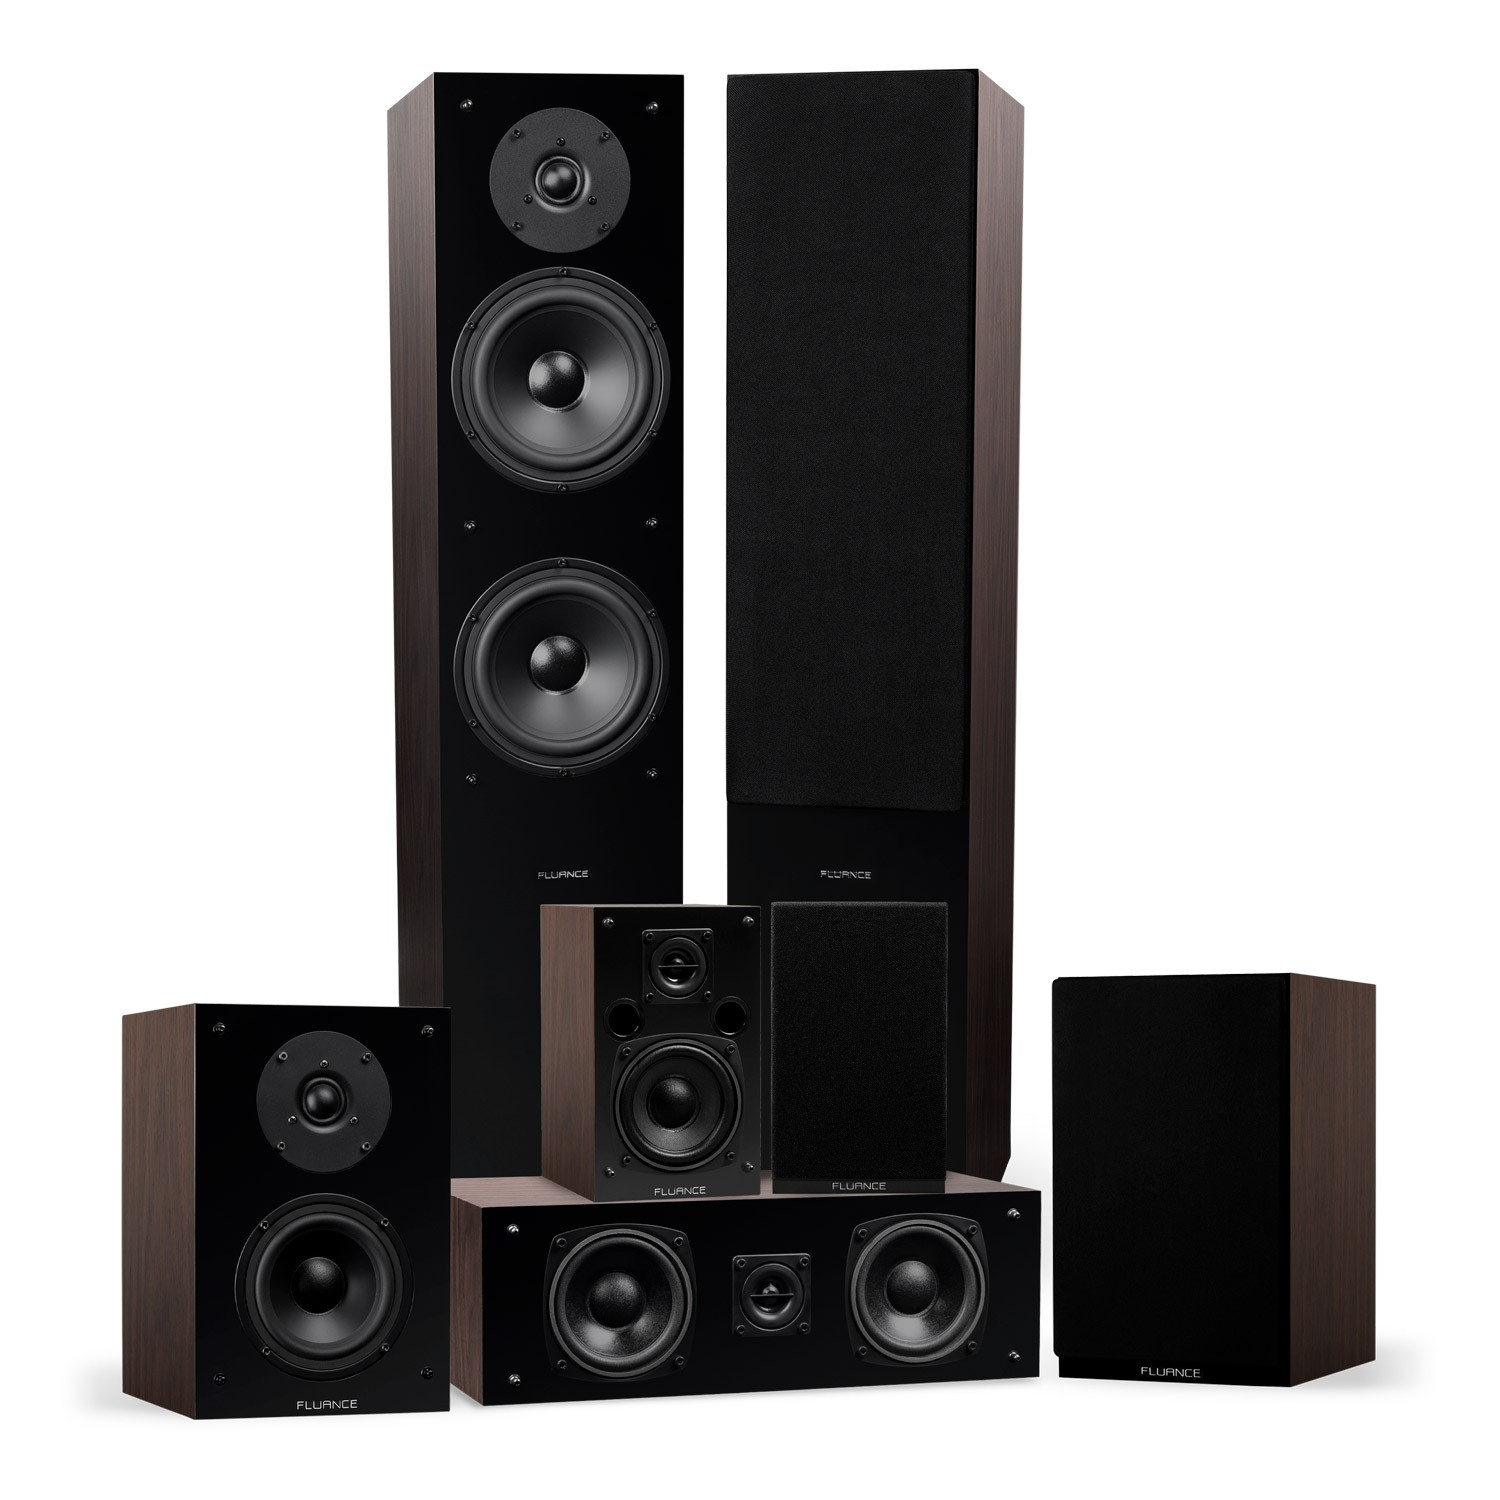 Elite Series Walnut Surround Sound Home Theater 7.0 Channel Speaker System